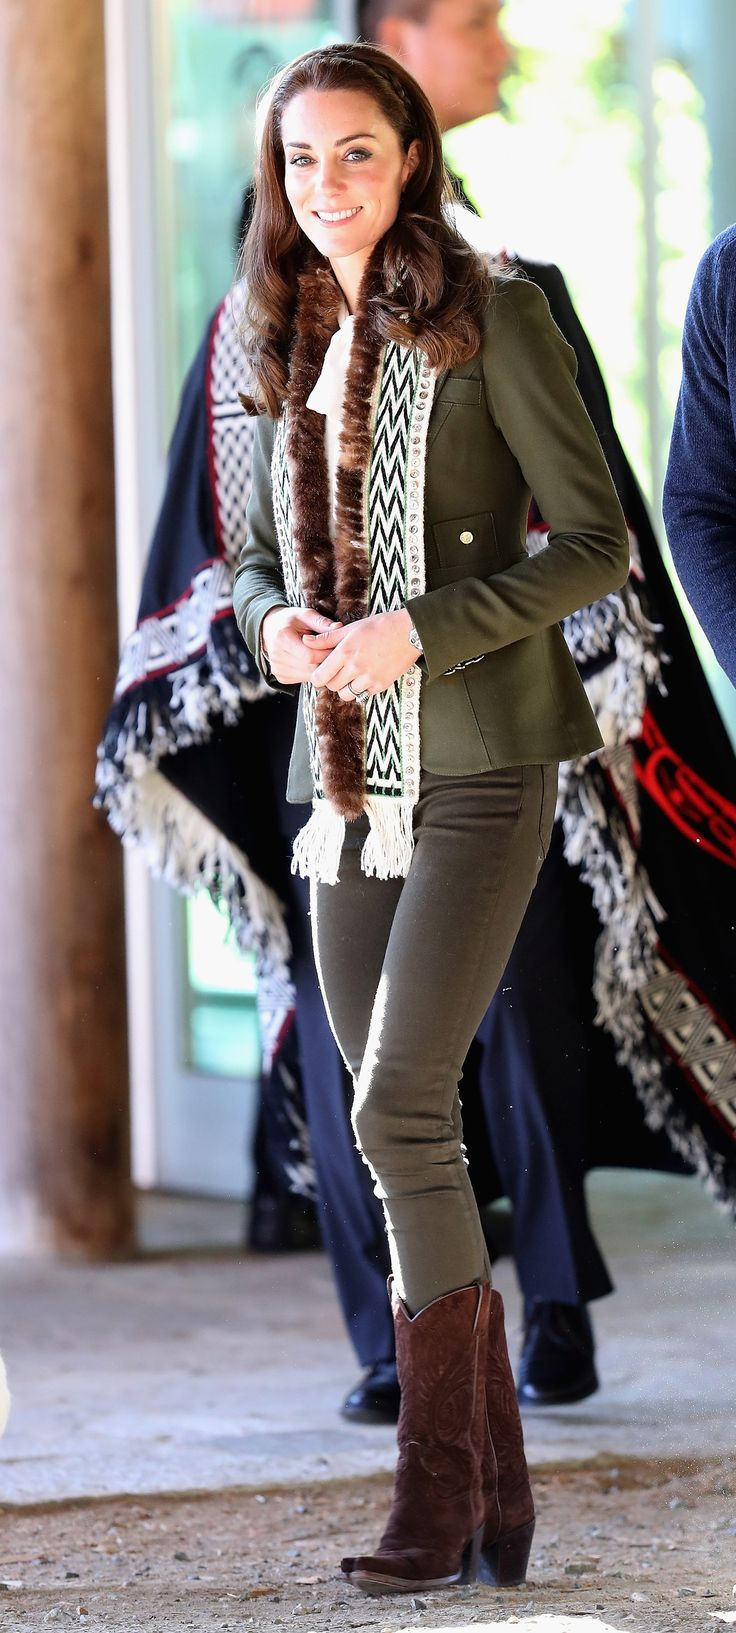 Jacket: Smythe; Top: Alice Temperley; Boots: R. Soles